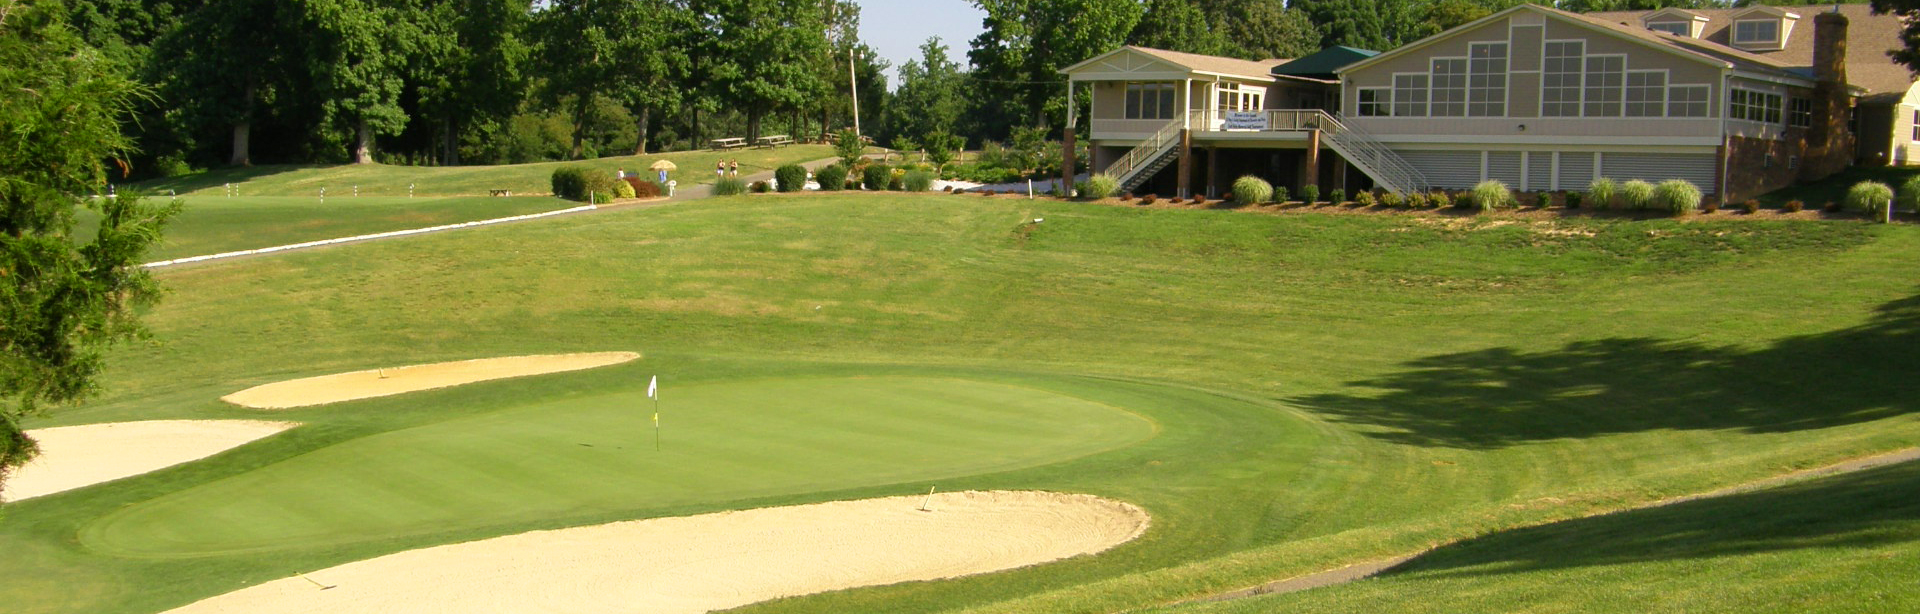 Wicomico Shores Golf Back Course